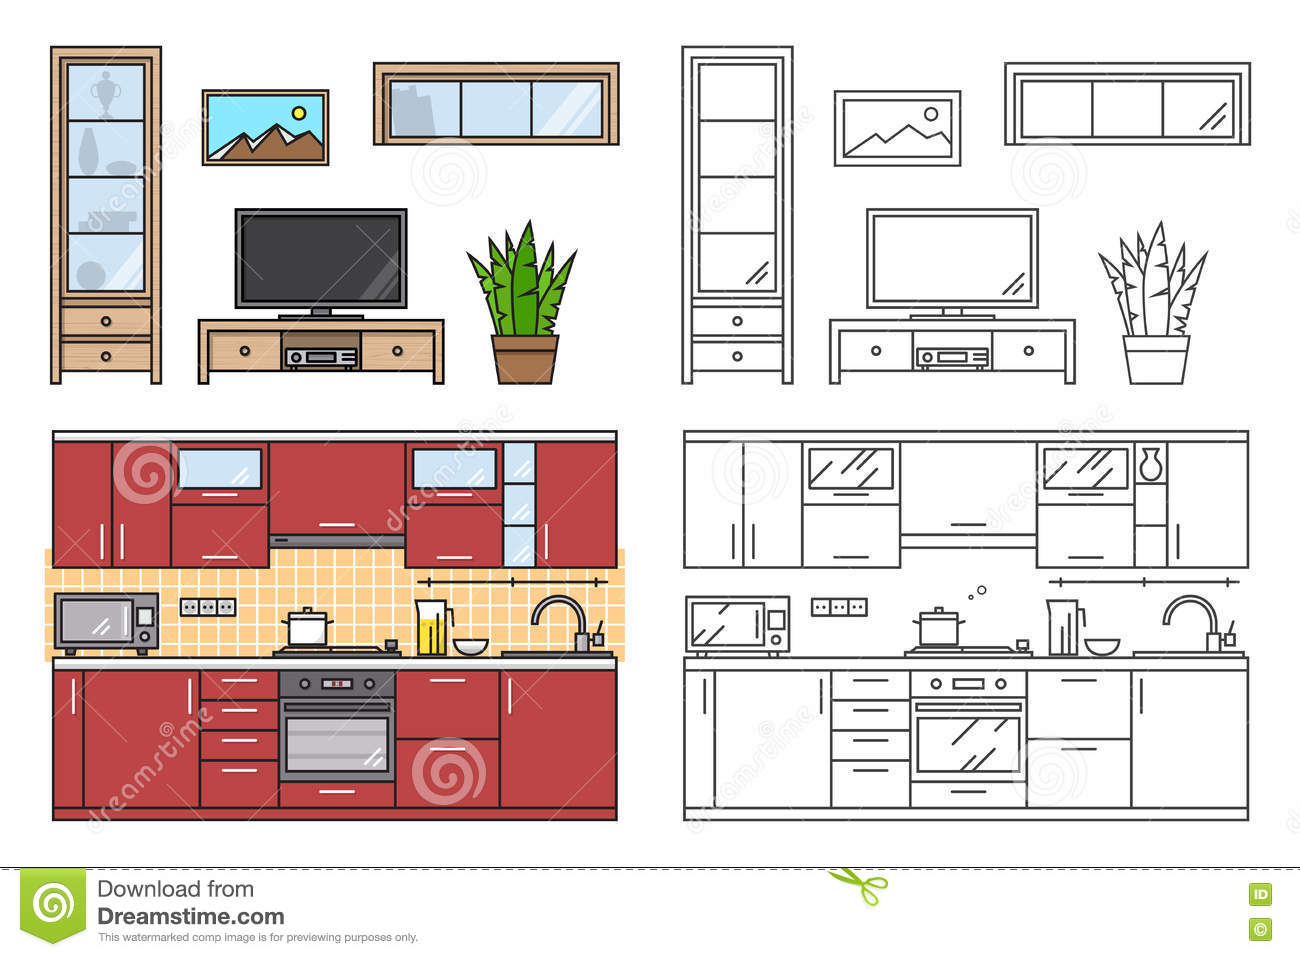 Furniture cartoons illustrations vector stock images for Interior design web app